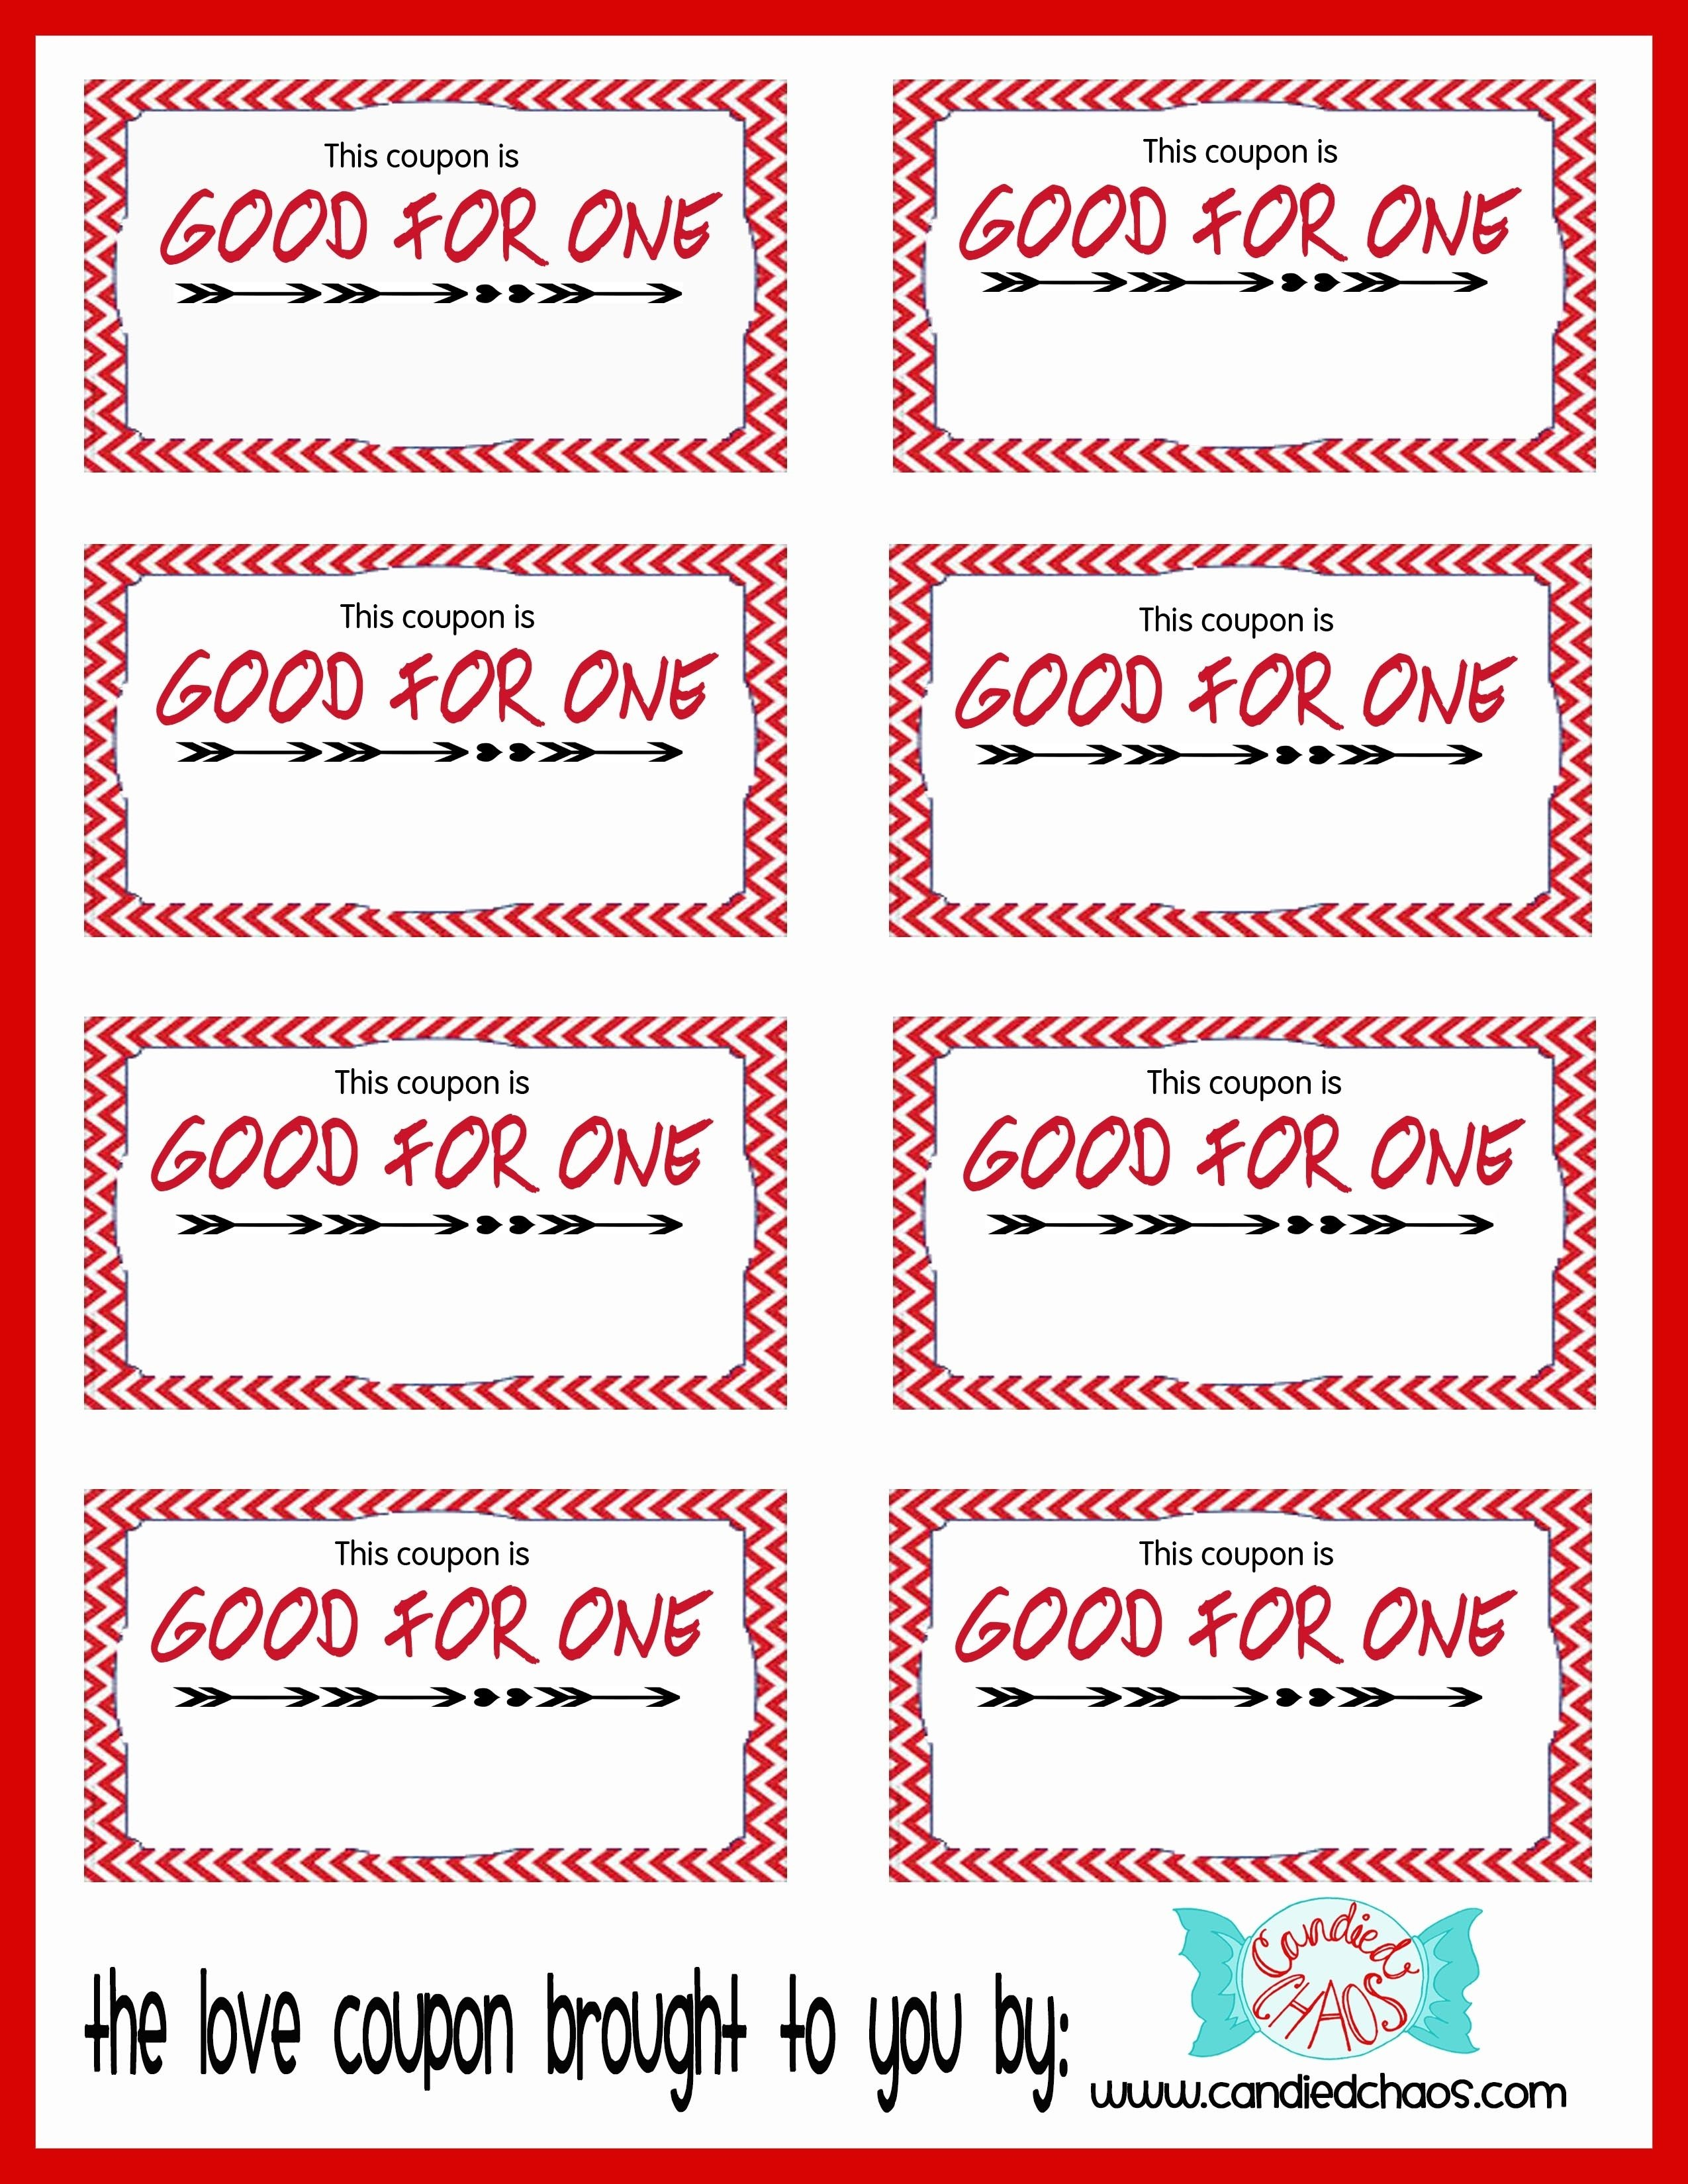 10 Most Recommended Cute Coupon Book Ideas For Boyfriend i will be honest valentines day isnt really a big thing in our 2 2020